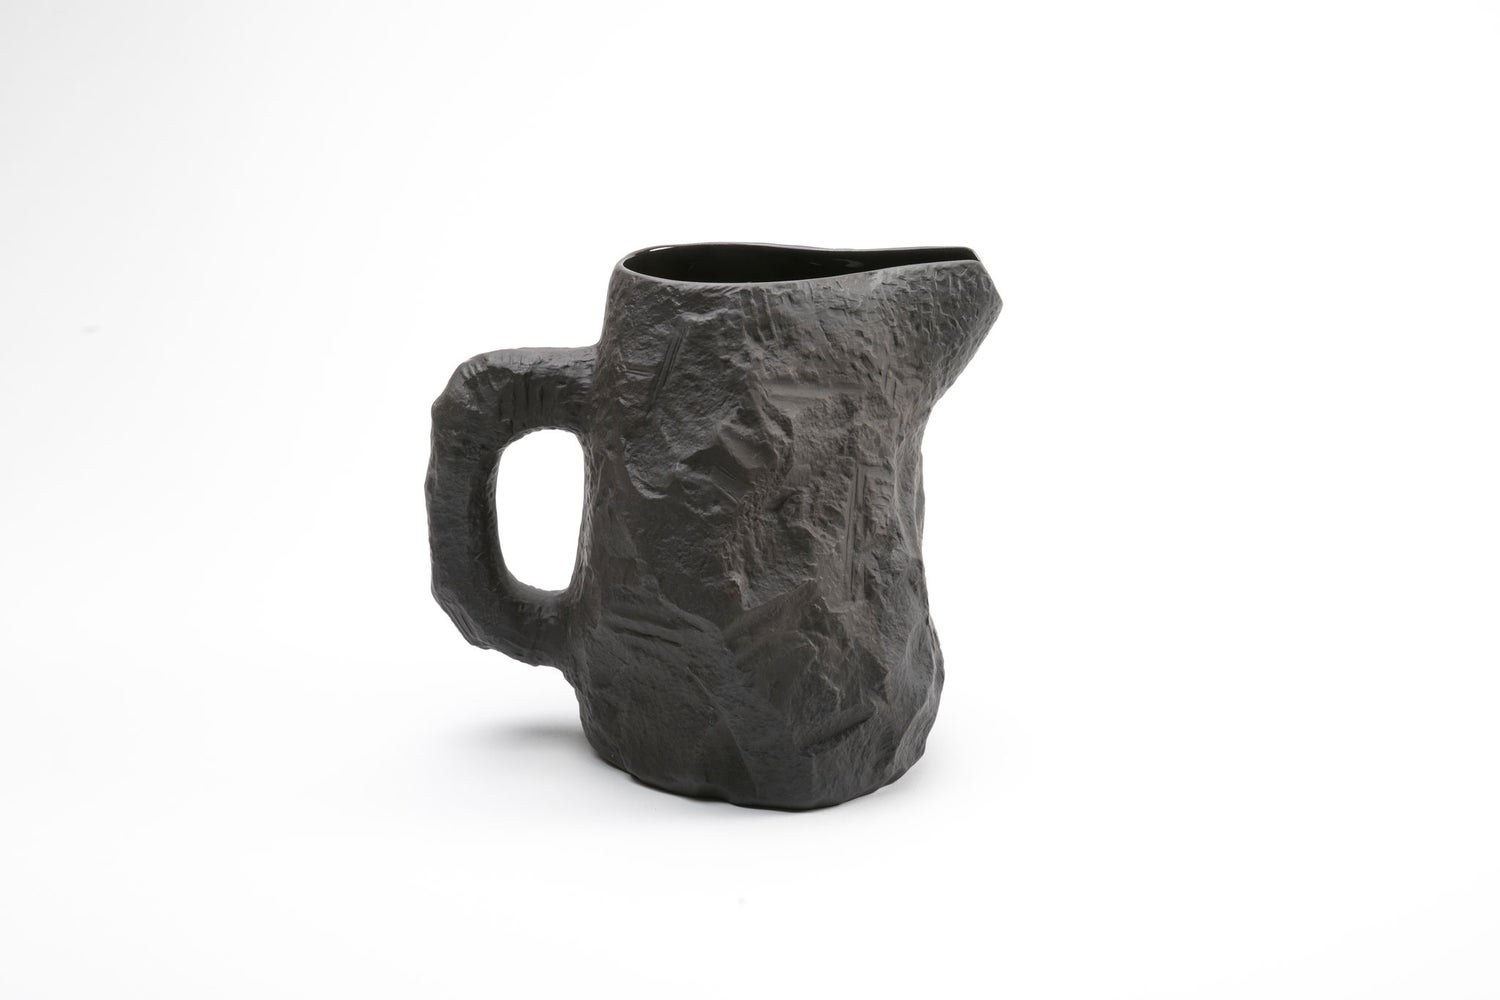 Image of Max Lamb - Crockery Jug, Black